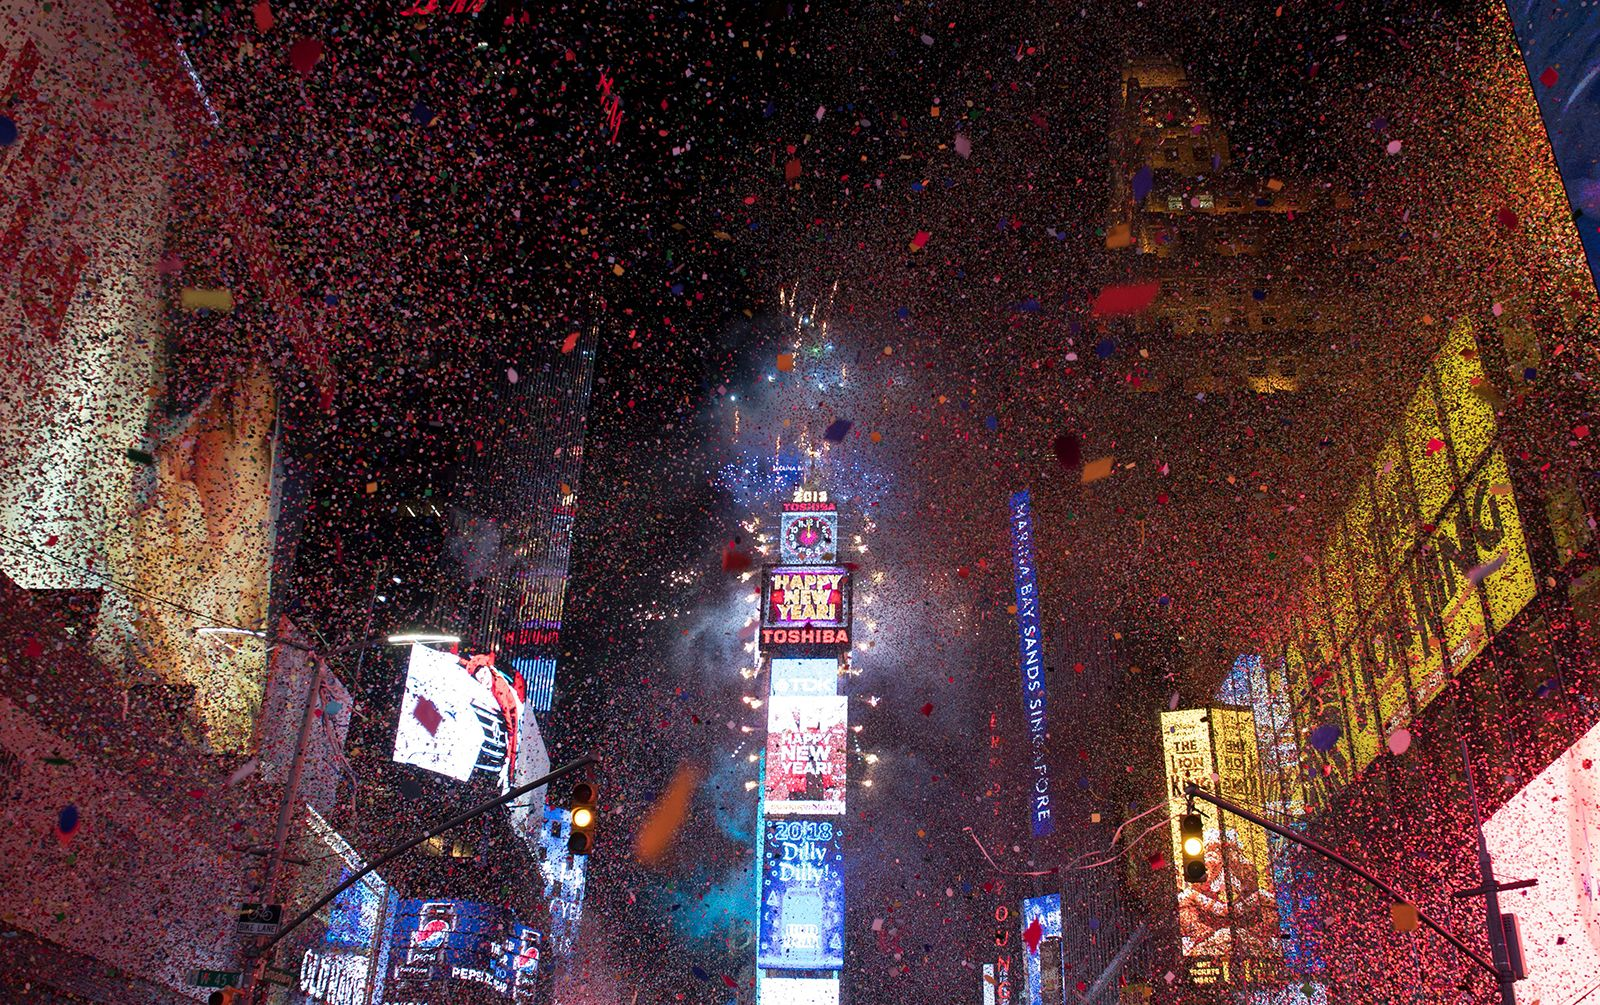 Times Square Will Host Virtual New Year S Eve Ball Drop In 2020 Times Square Ball Drop New Years Eve Ball New Years Ball